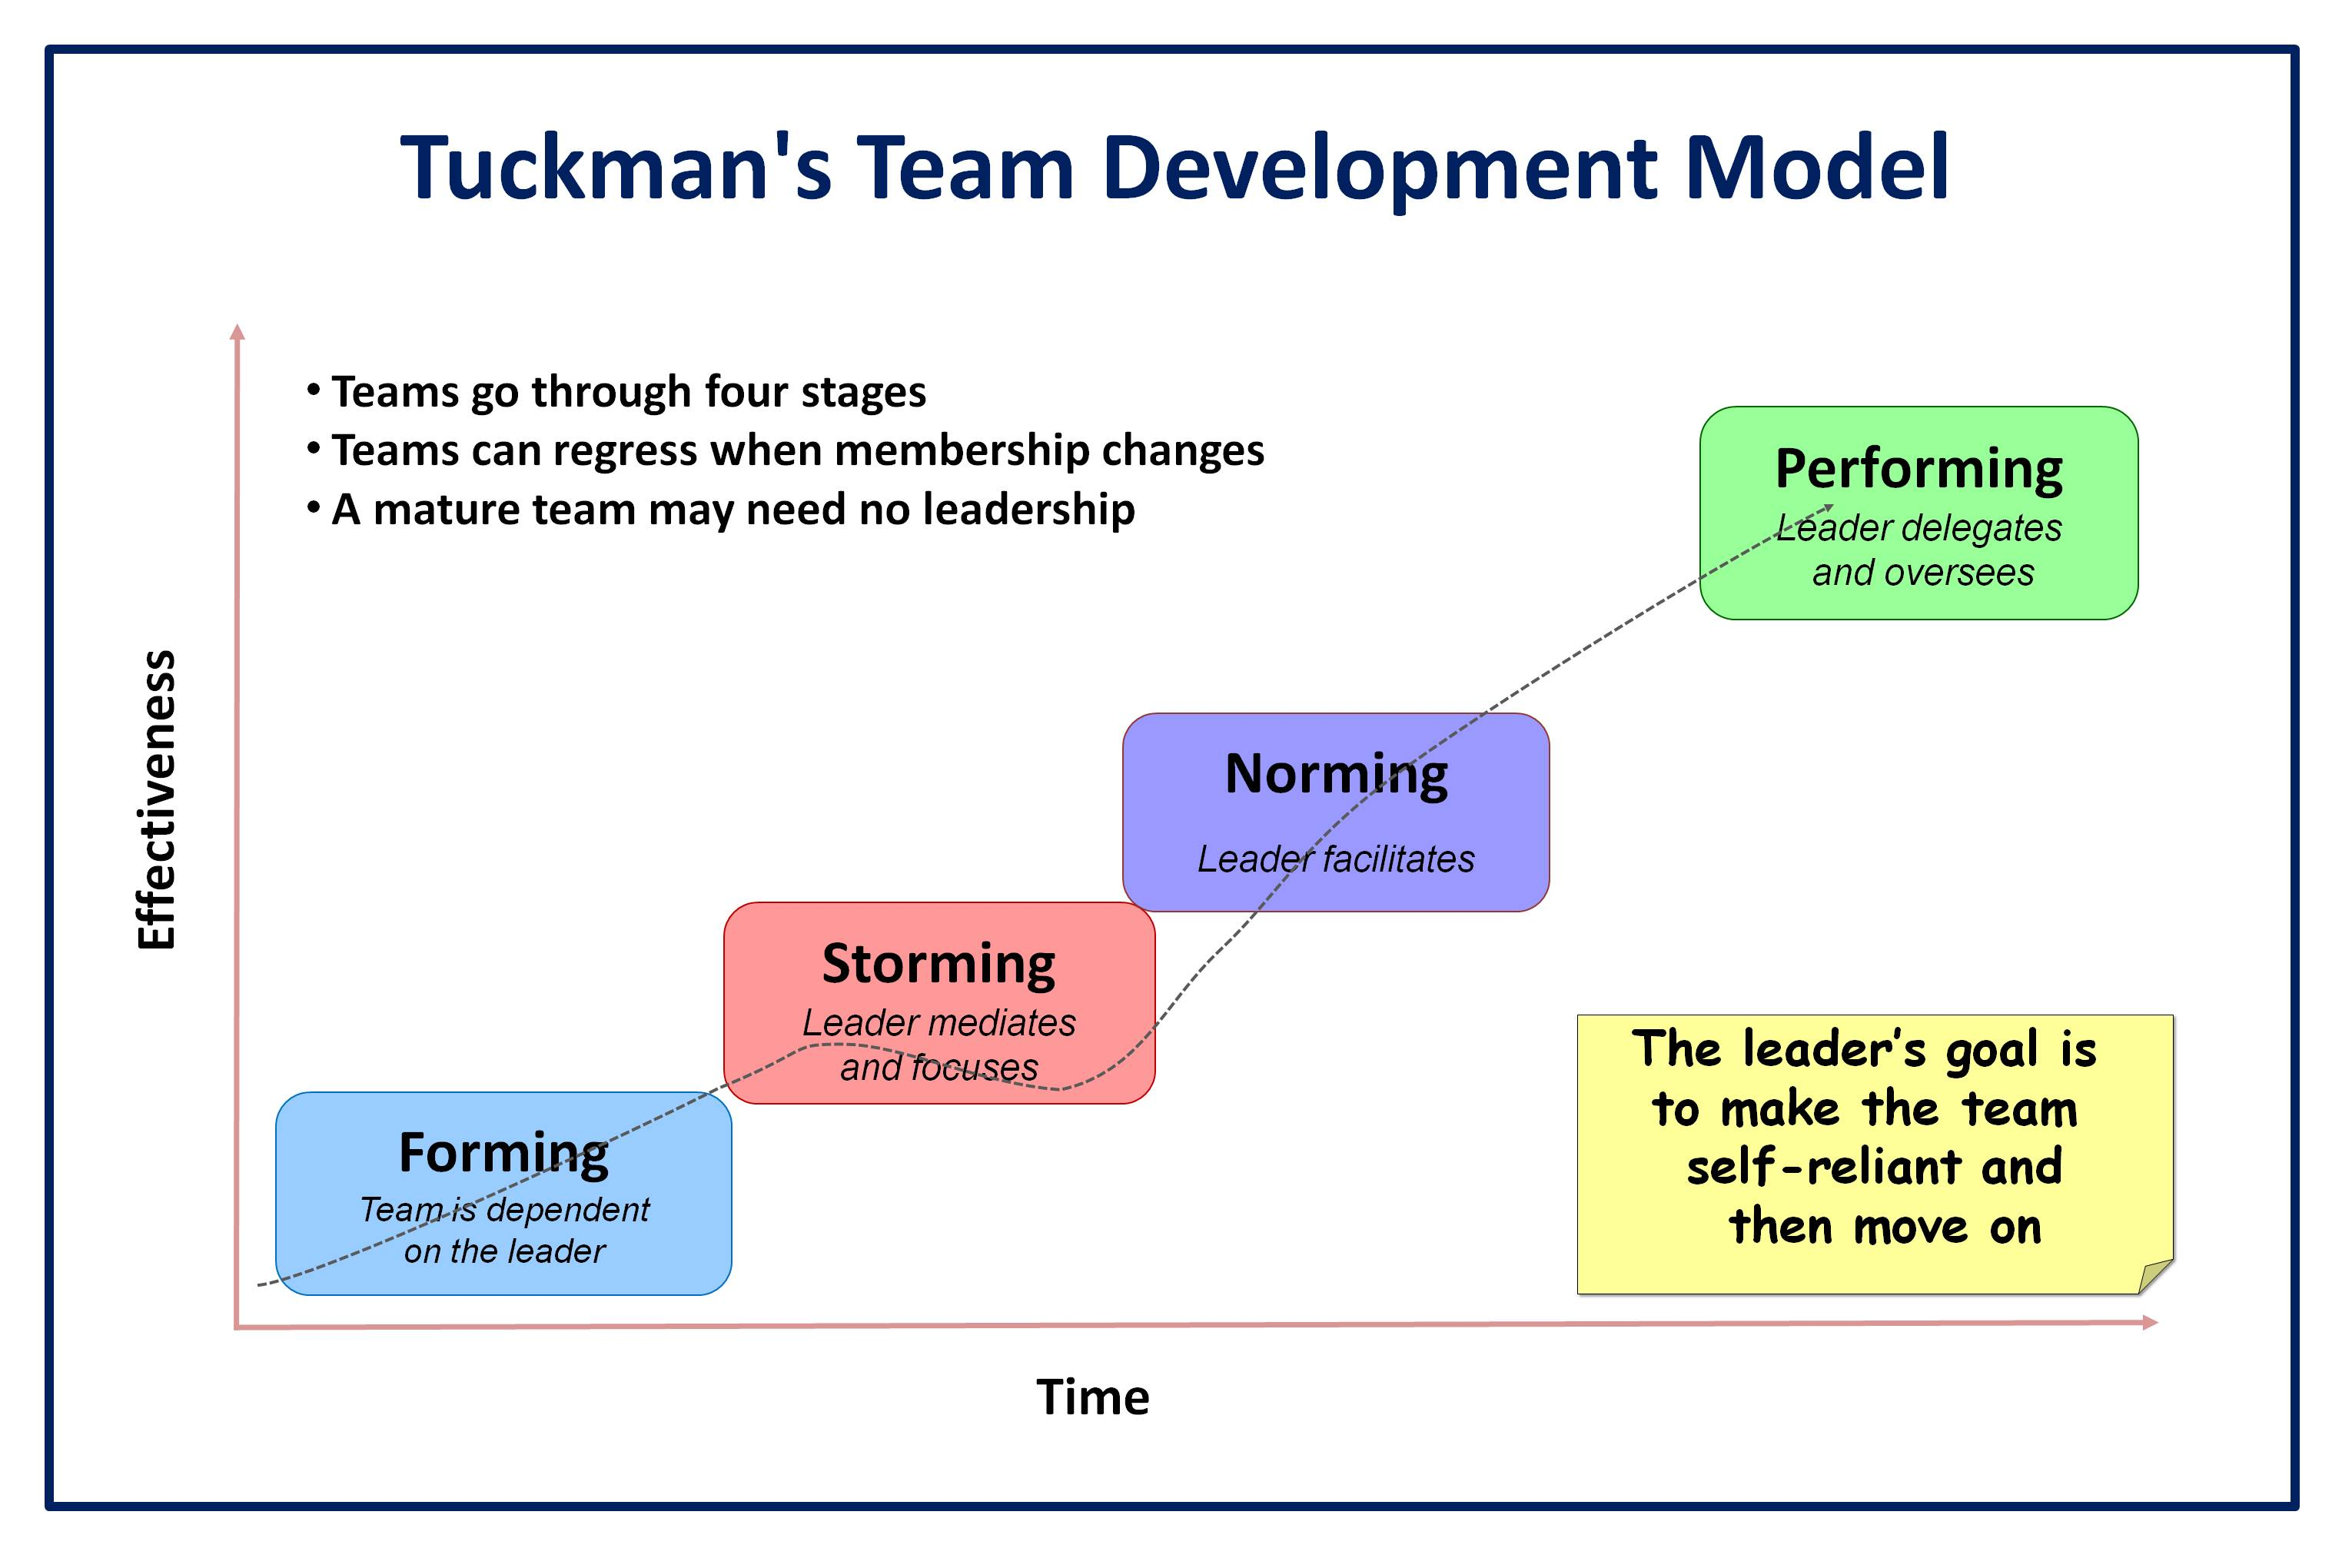 team model essay Team leadership model a lack of leadership is often seen as a roadblock to a team's performance as stewart and manz (1995, p748) write, more specifically, work team management or supervision is often identified as a primary reason why self-management teams fail to properly develop and yield improvements in productivity, quality, and quality of life for american workers.